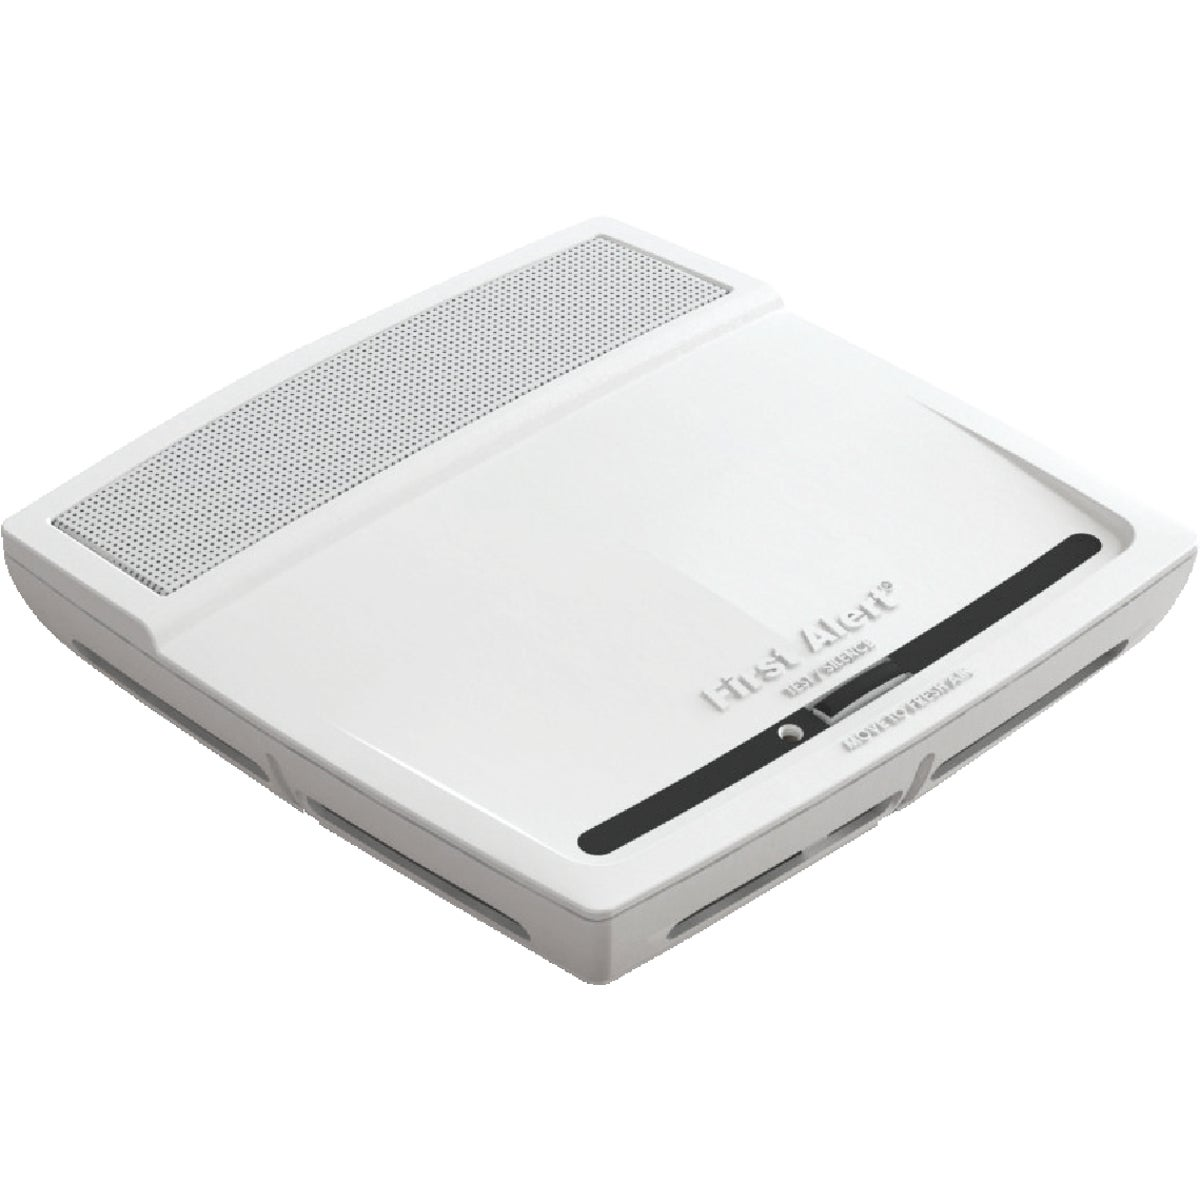 SMOKE/CO ALARM - PC900V by First Alert  Jarden